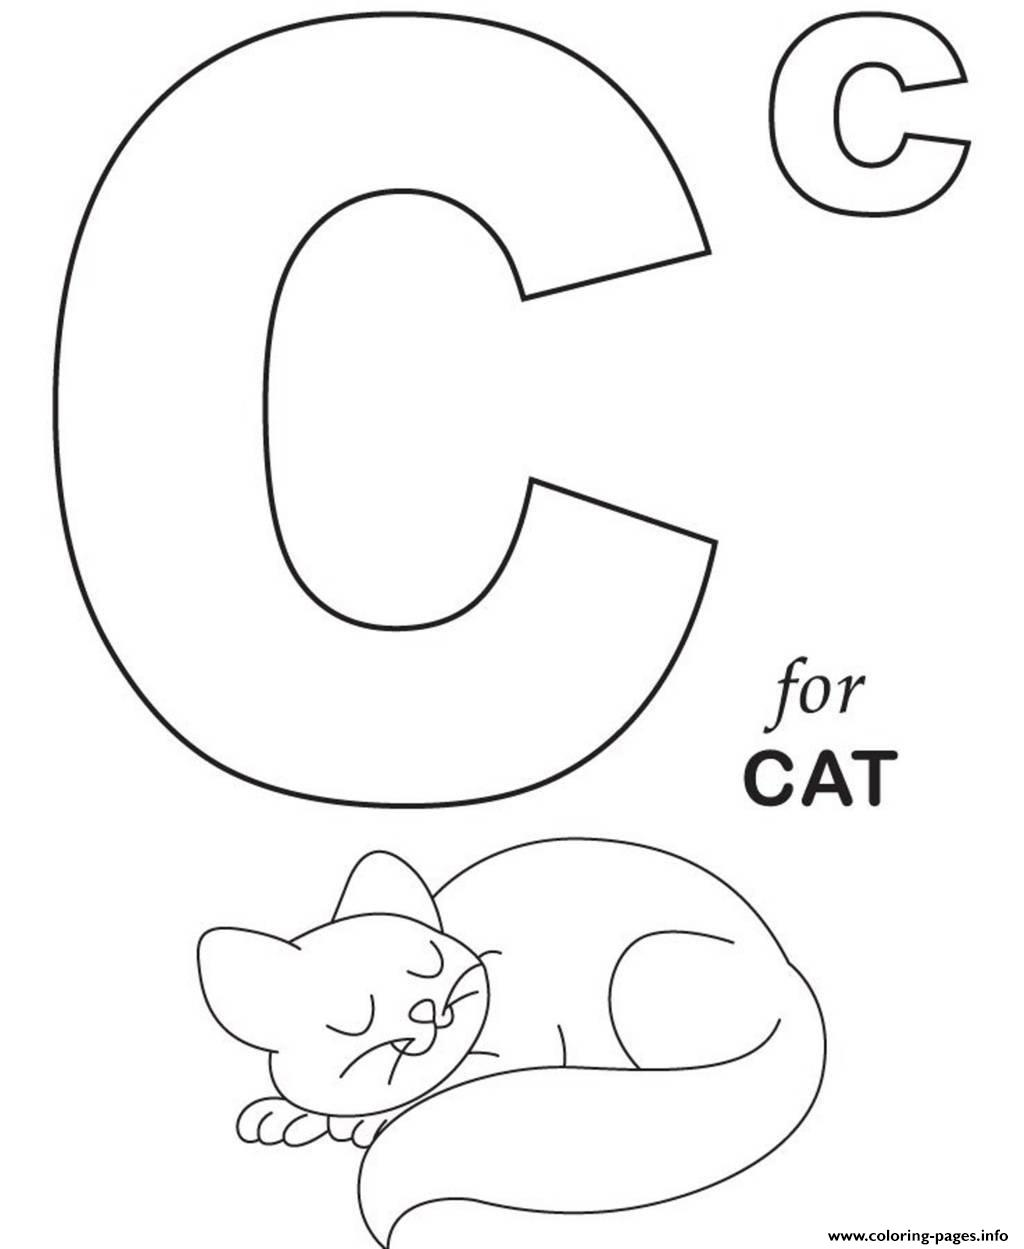 c coloring worksheet letter c coloring pages to download and print for free c worksheet coloring